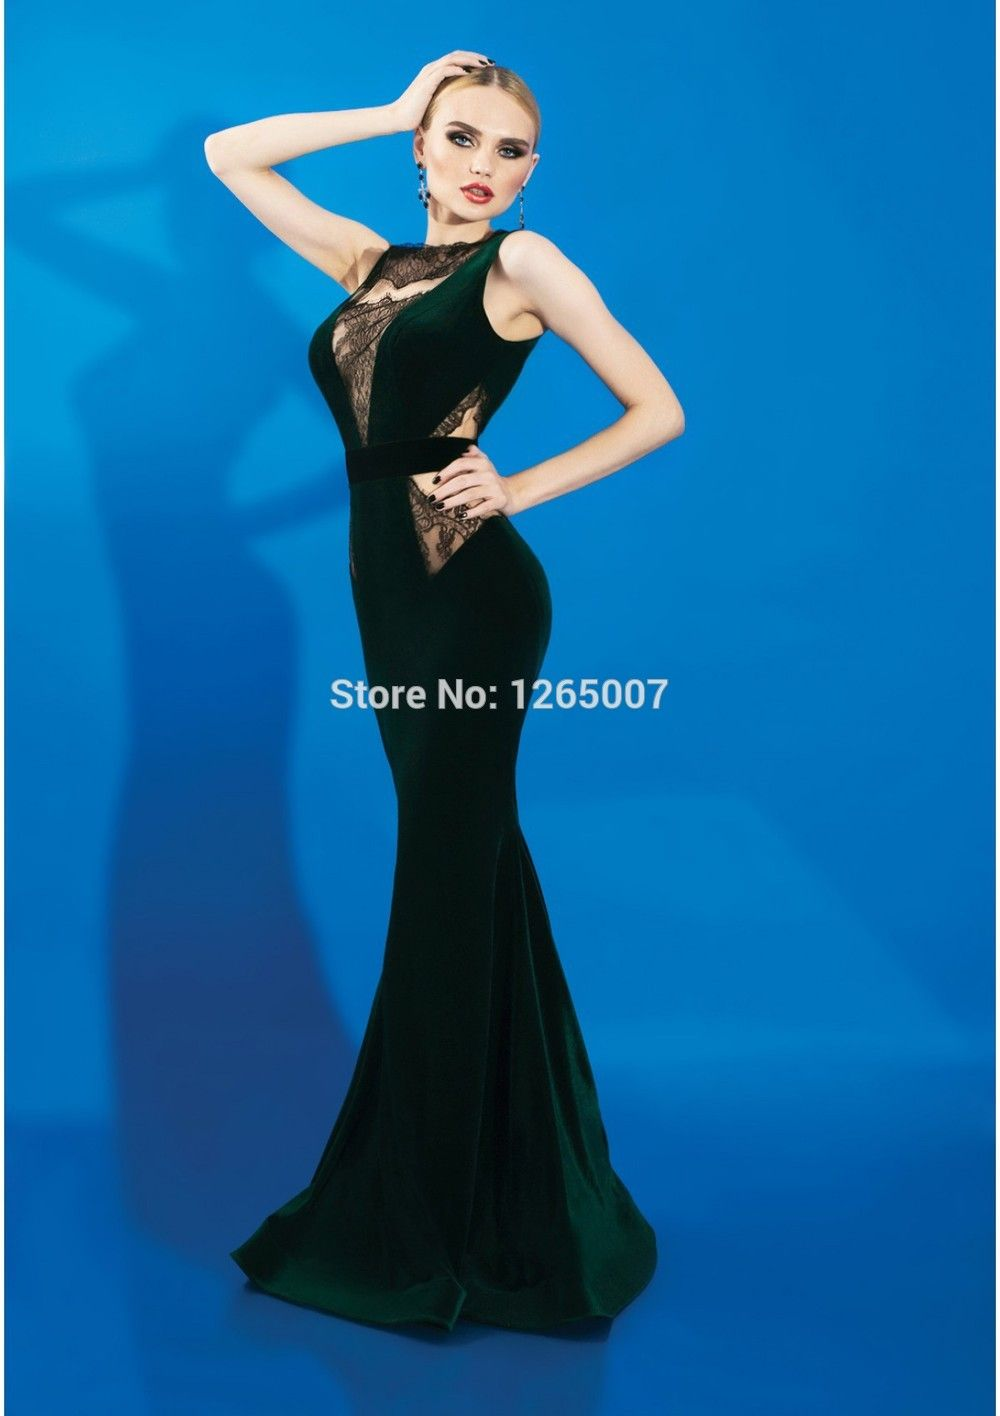 New Arrival O Neck Appliques See Through Black Lace Mermaid Green Velvet Evening  Dresses Sexy Long Women Formal Gown-in Evening Dresses from Weddings ... 01f4565dcefb